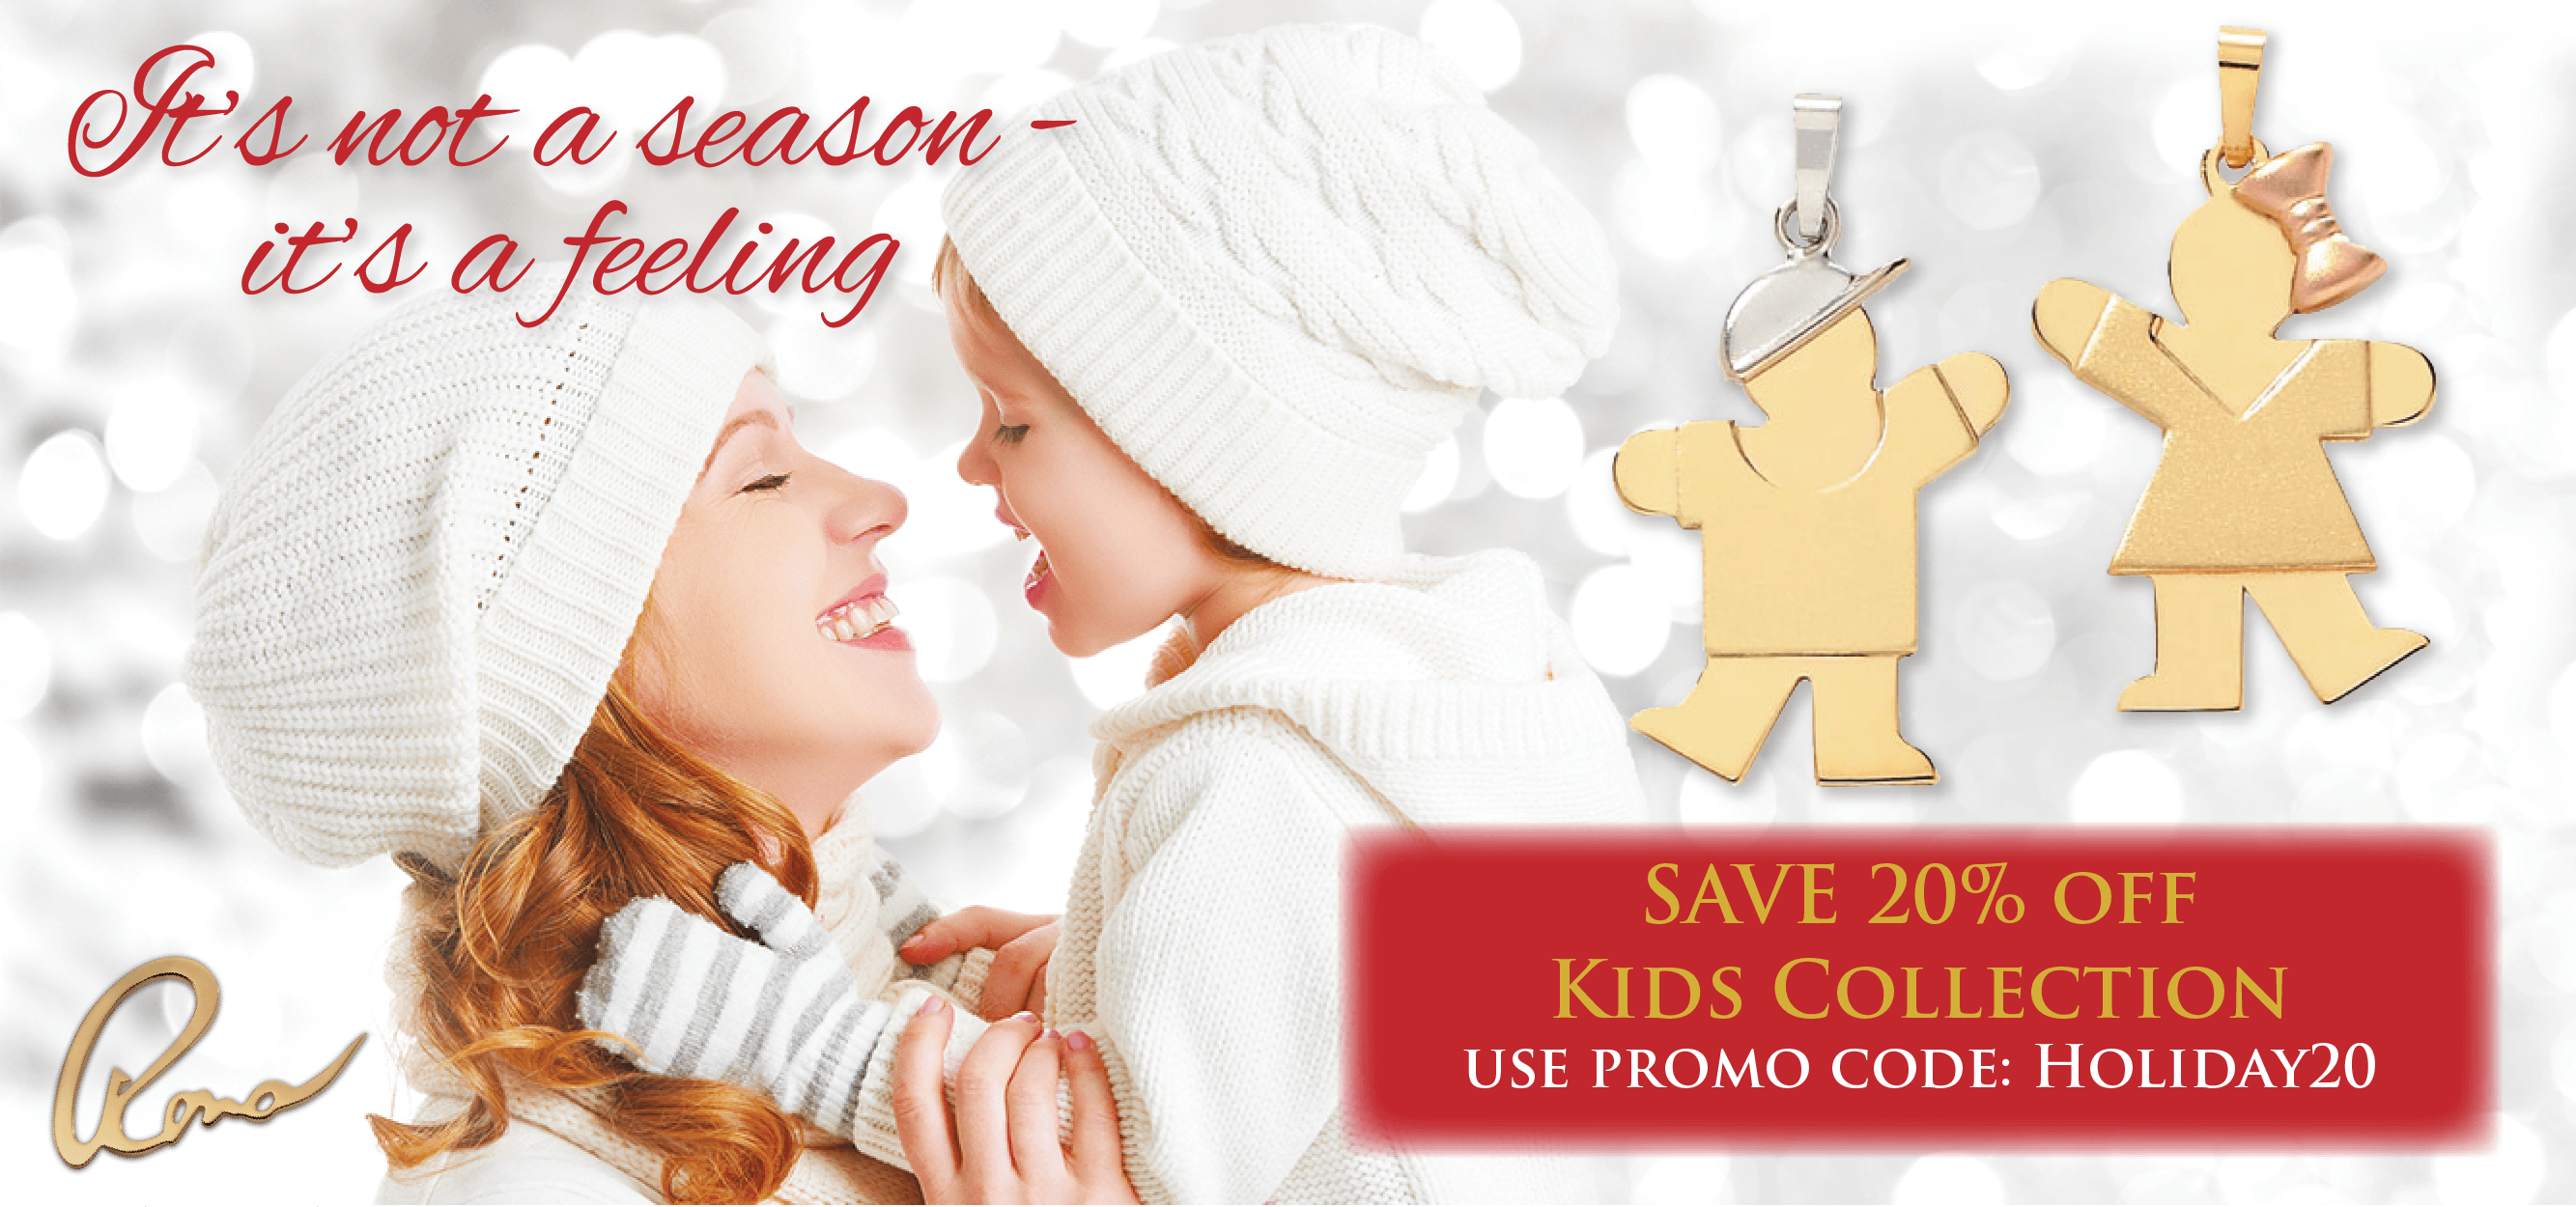 It's not a season - It's a feeling - Happy Holidays from Rona K. Corp